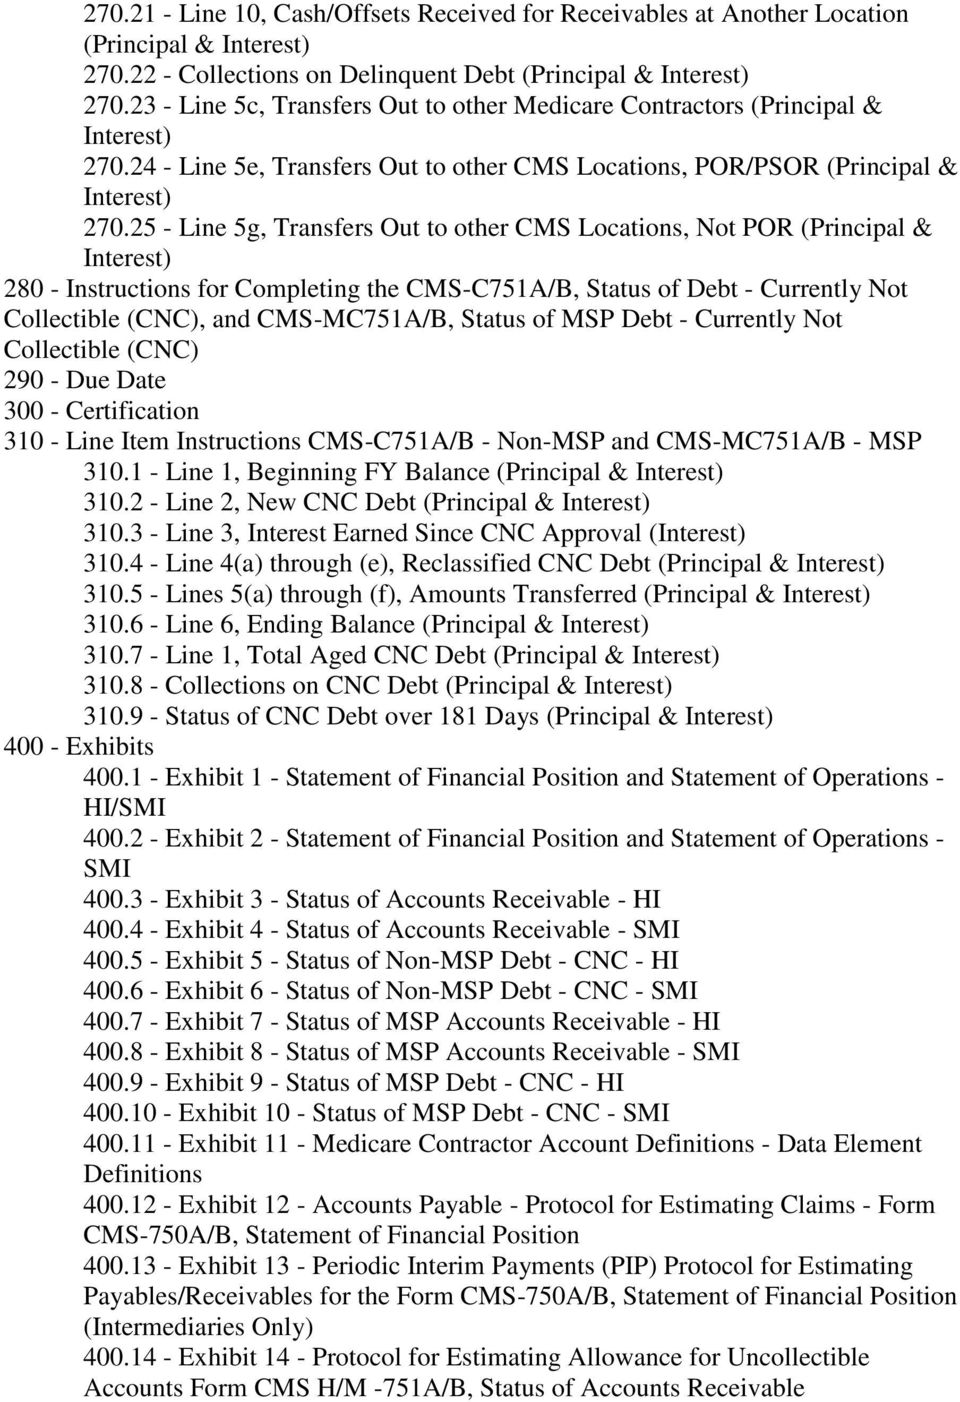 25 - Line 5g, Transfers Out to other CMS Locations, Not POR (Principal & Interest) 280 - Instructions for Completing the CMS-C751A/B, Status of Debt - Currently Not Collectible (CNC), and